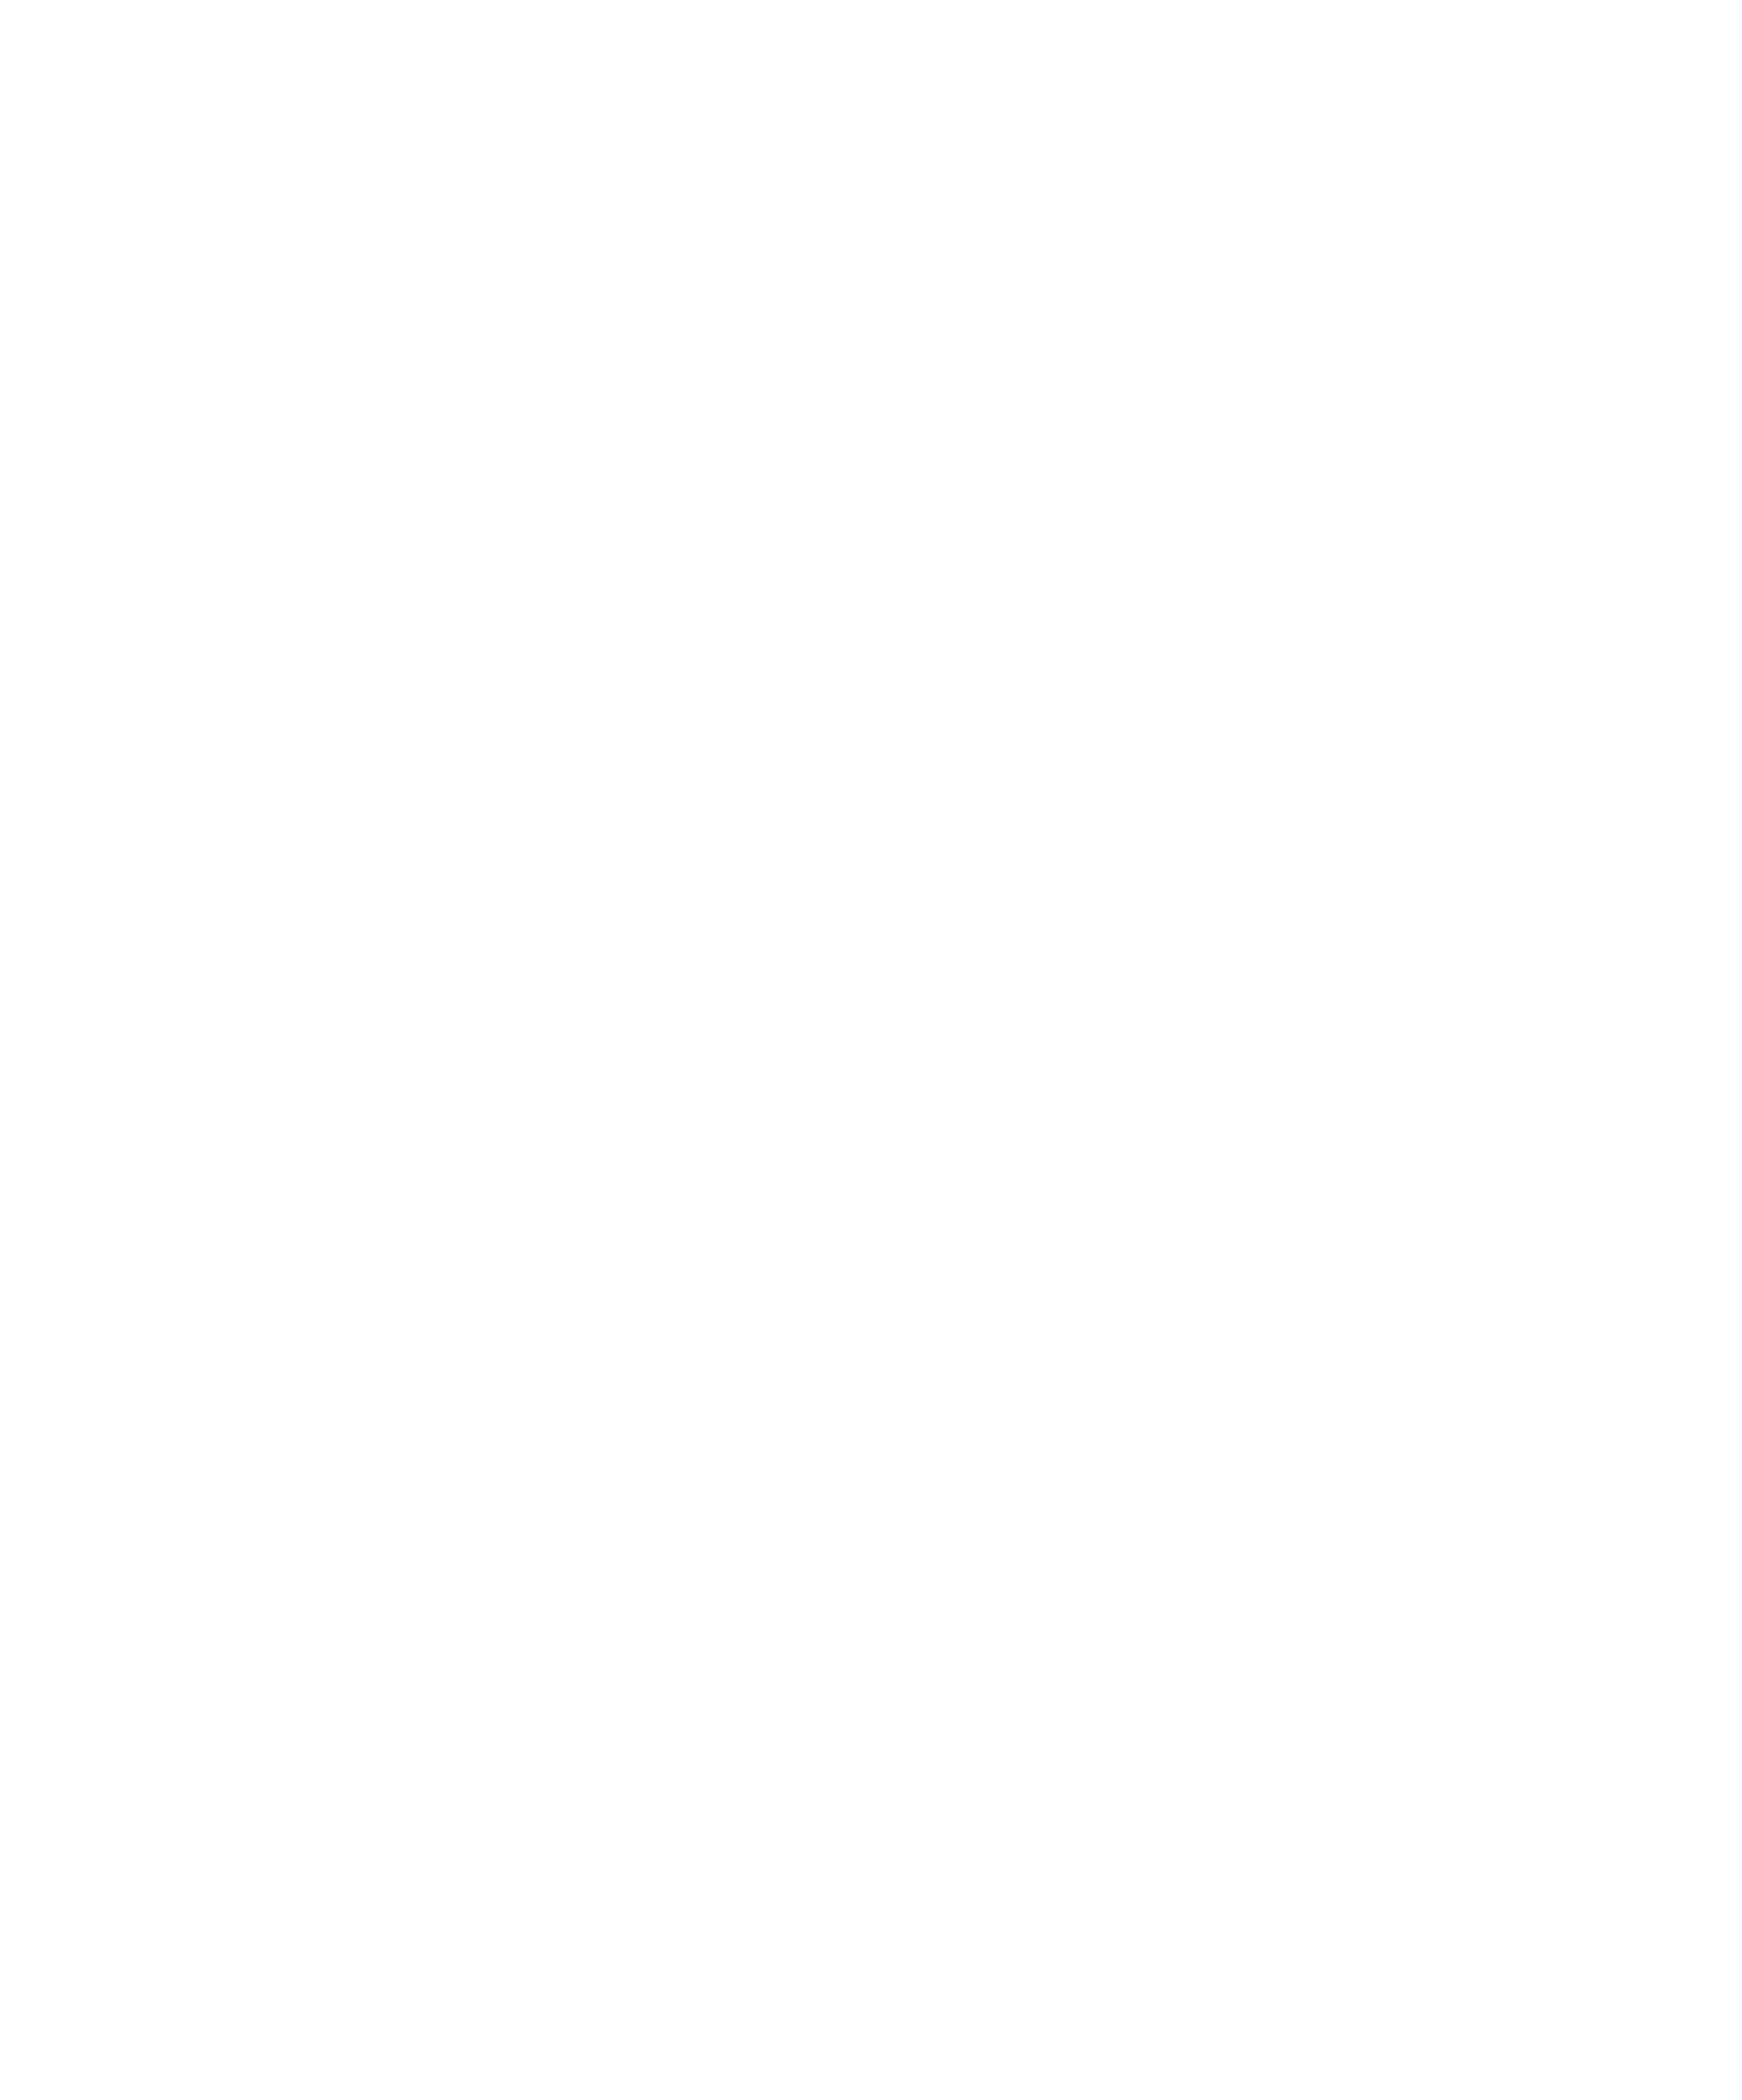 1% for the panet logo